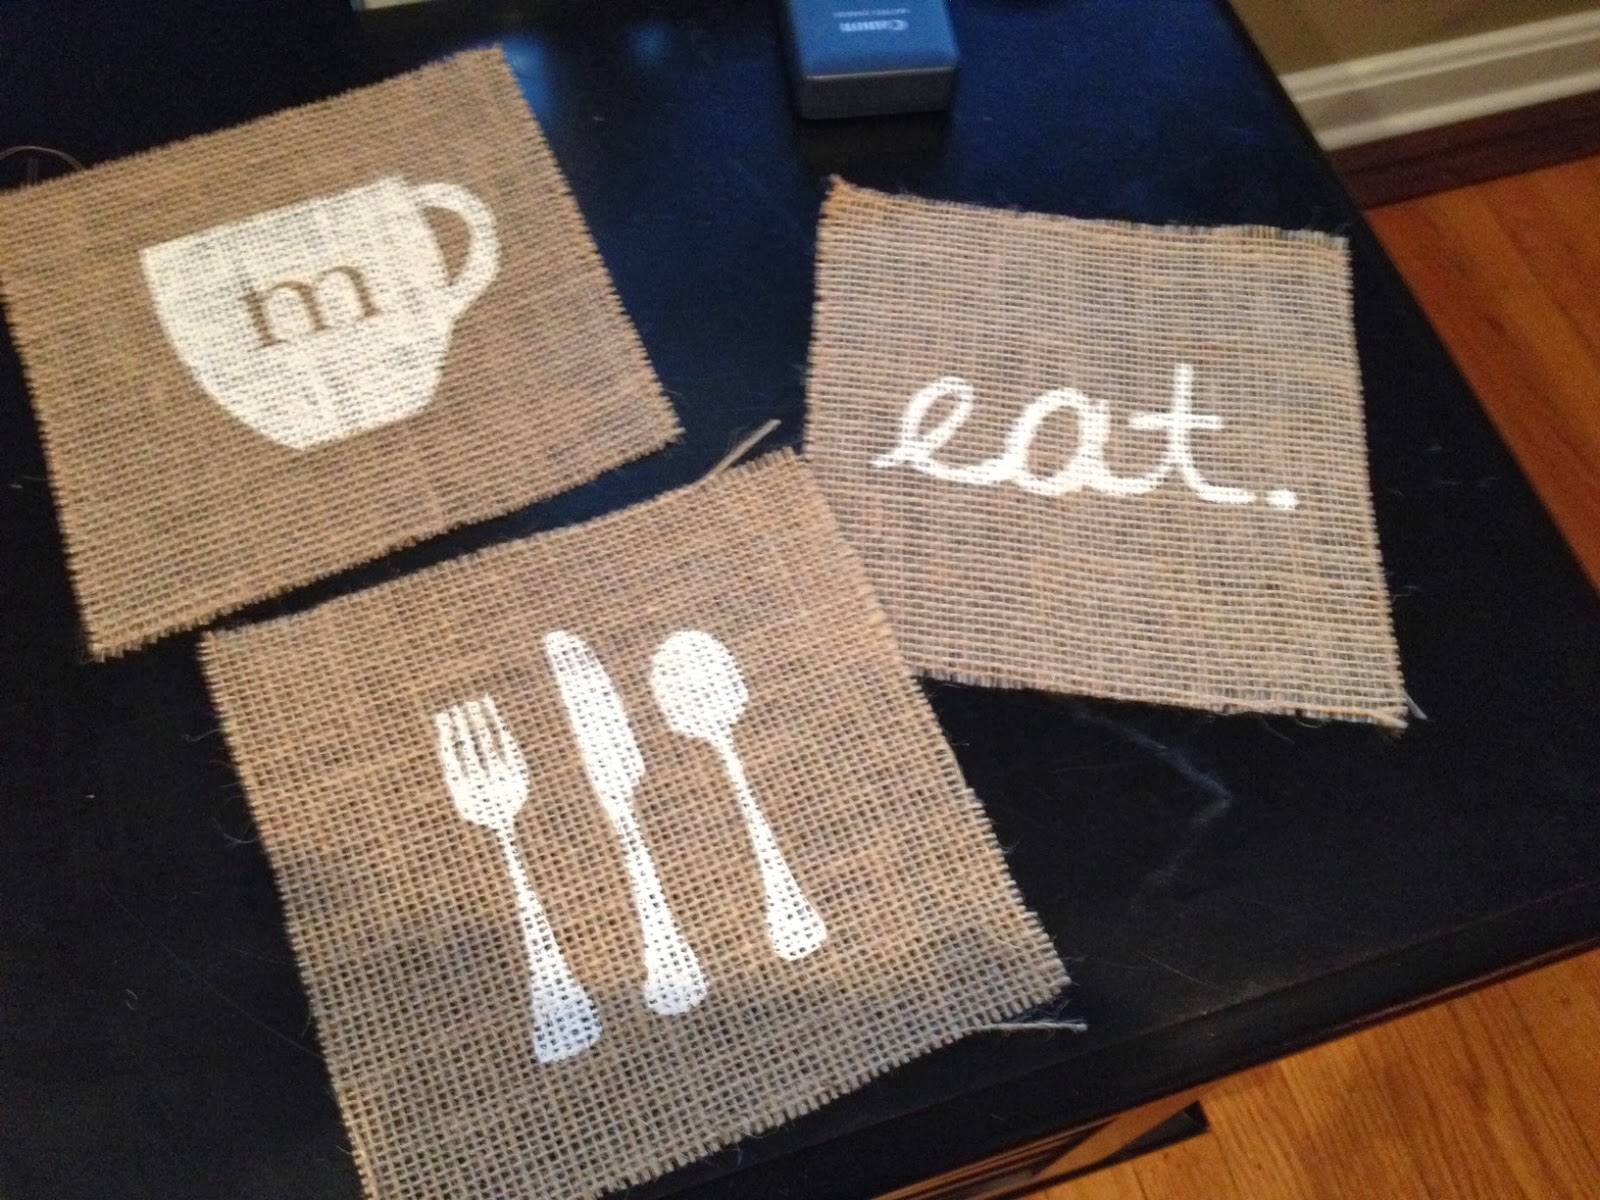 Kitchen art, DIY, do it yourself, Silhouette tutorial, Silhouette Studio, burlap